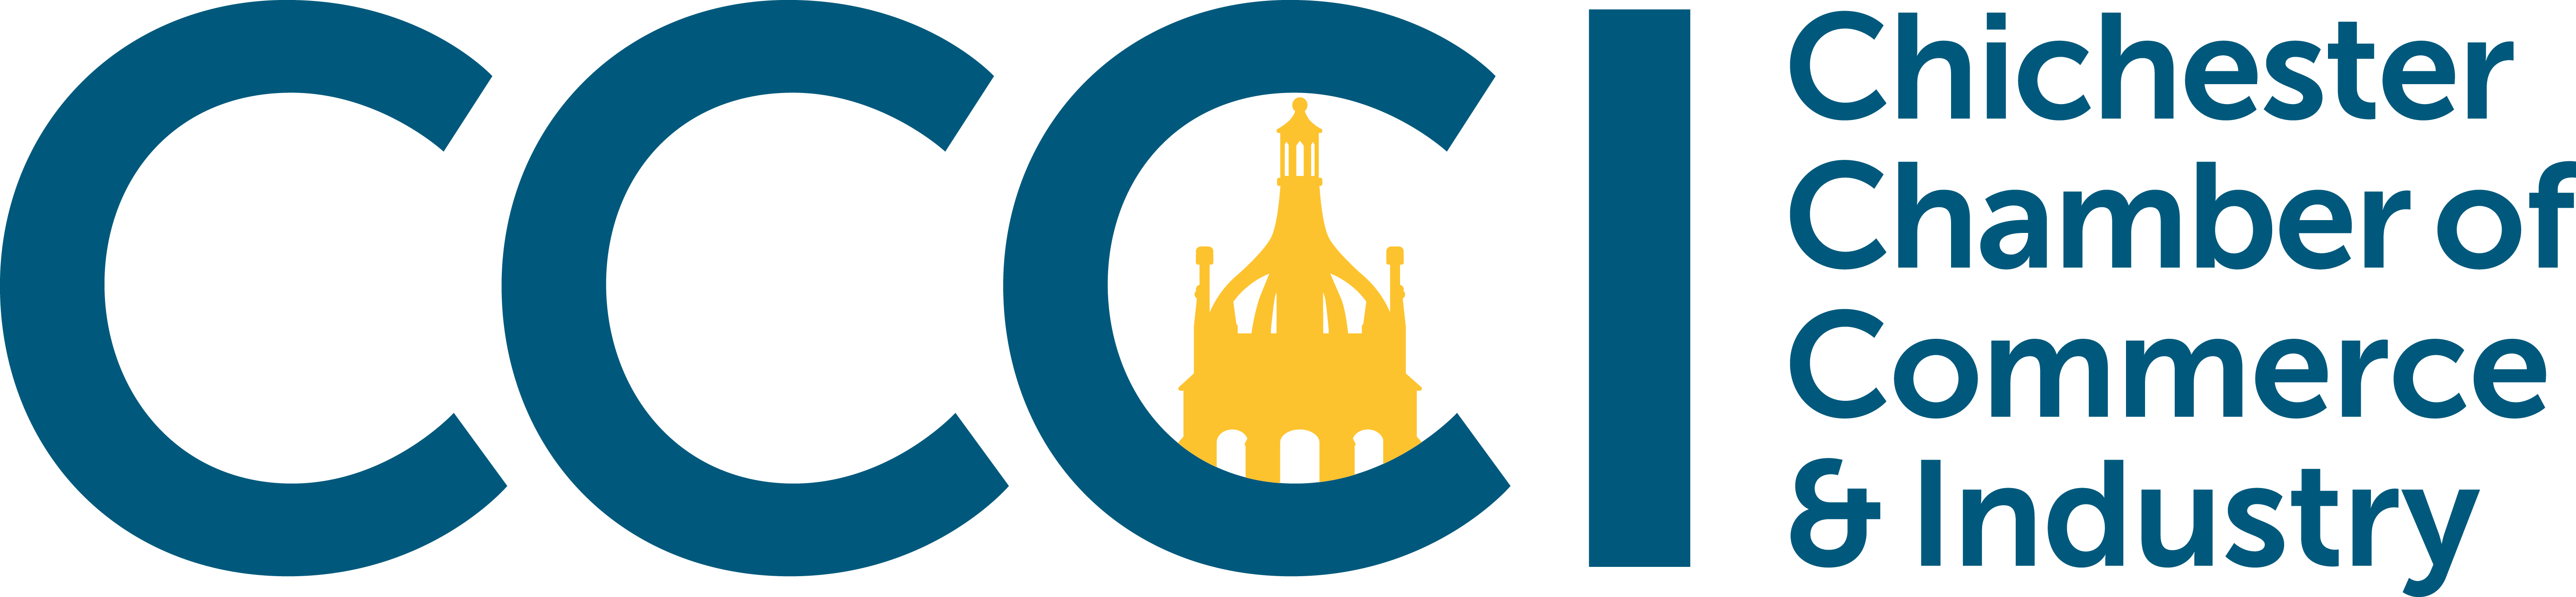 Chichester Chamber of Commerce and Industry